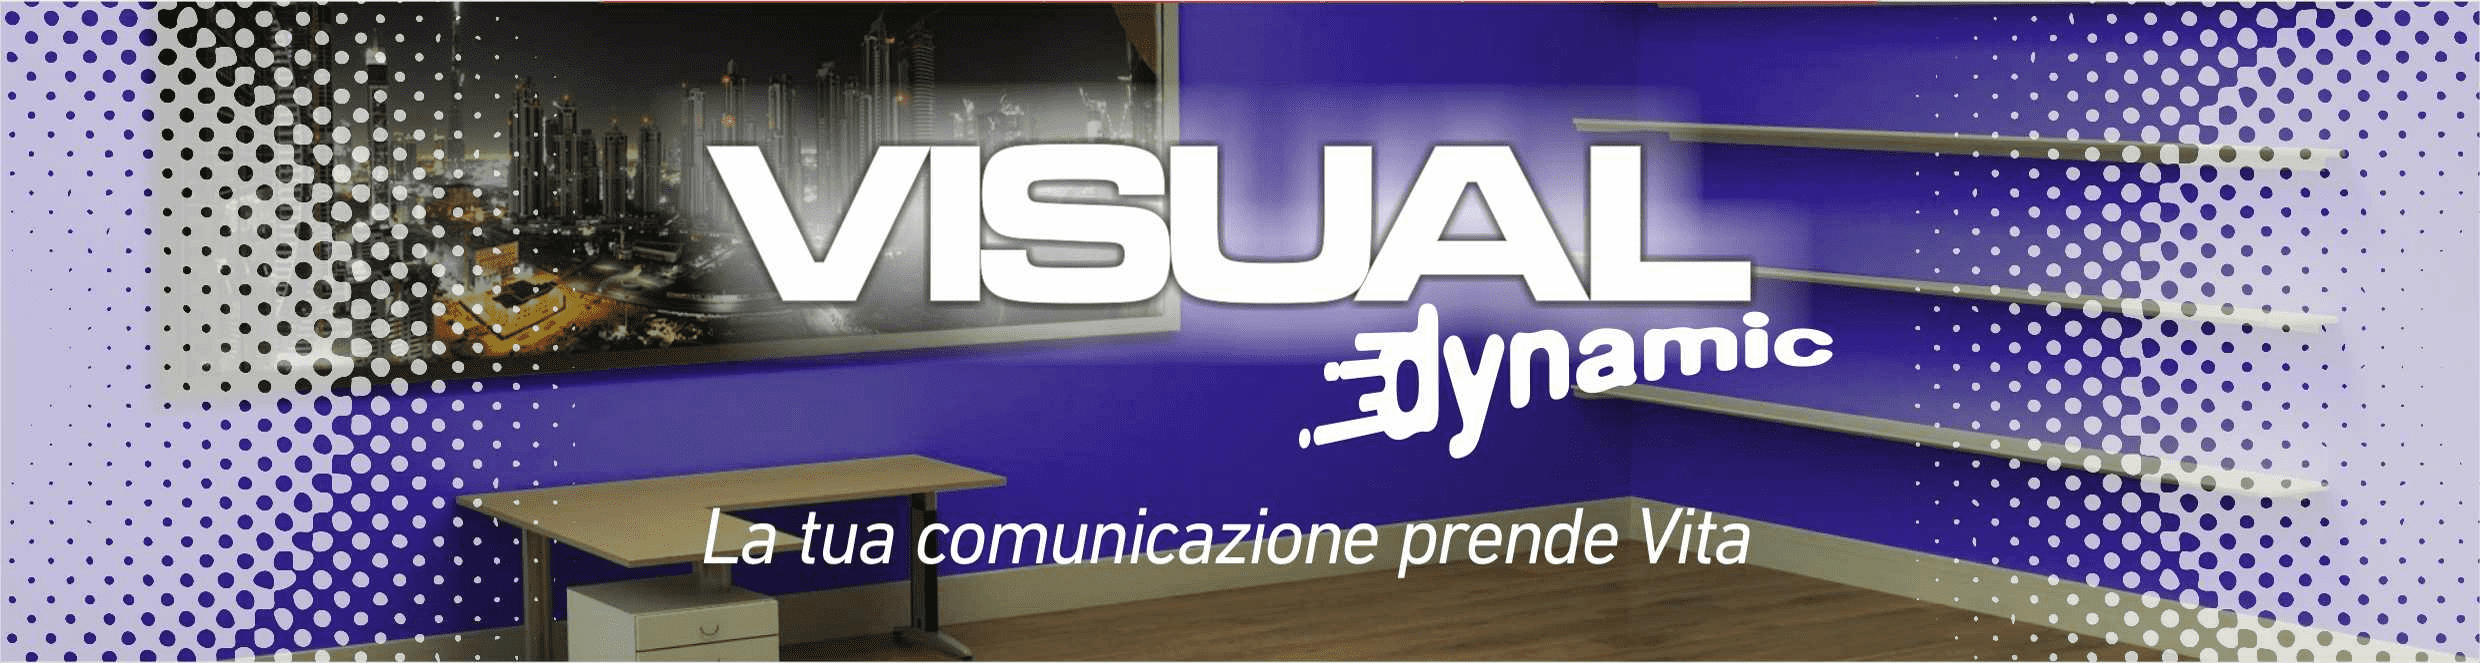 visualdynamic